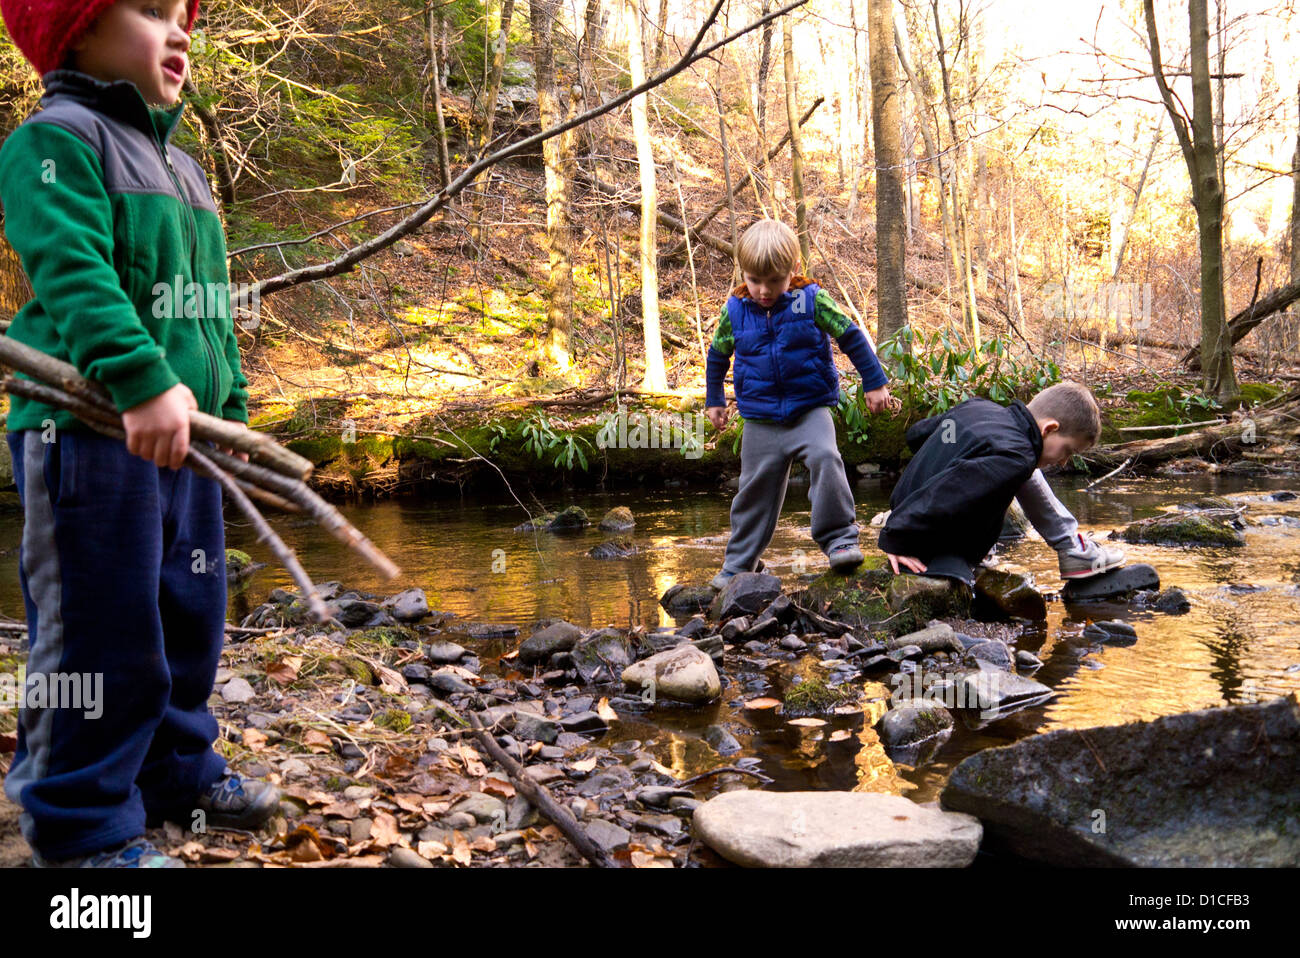 Three little boys playing in and around a stream on a fall day - Stock Image